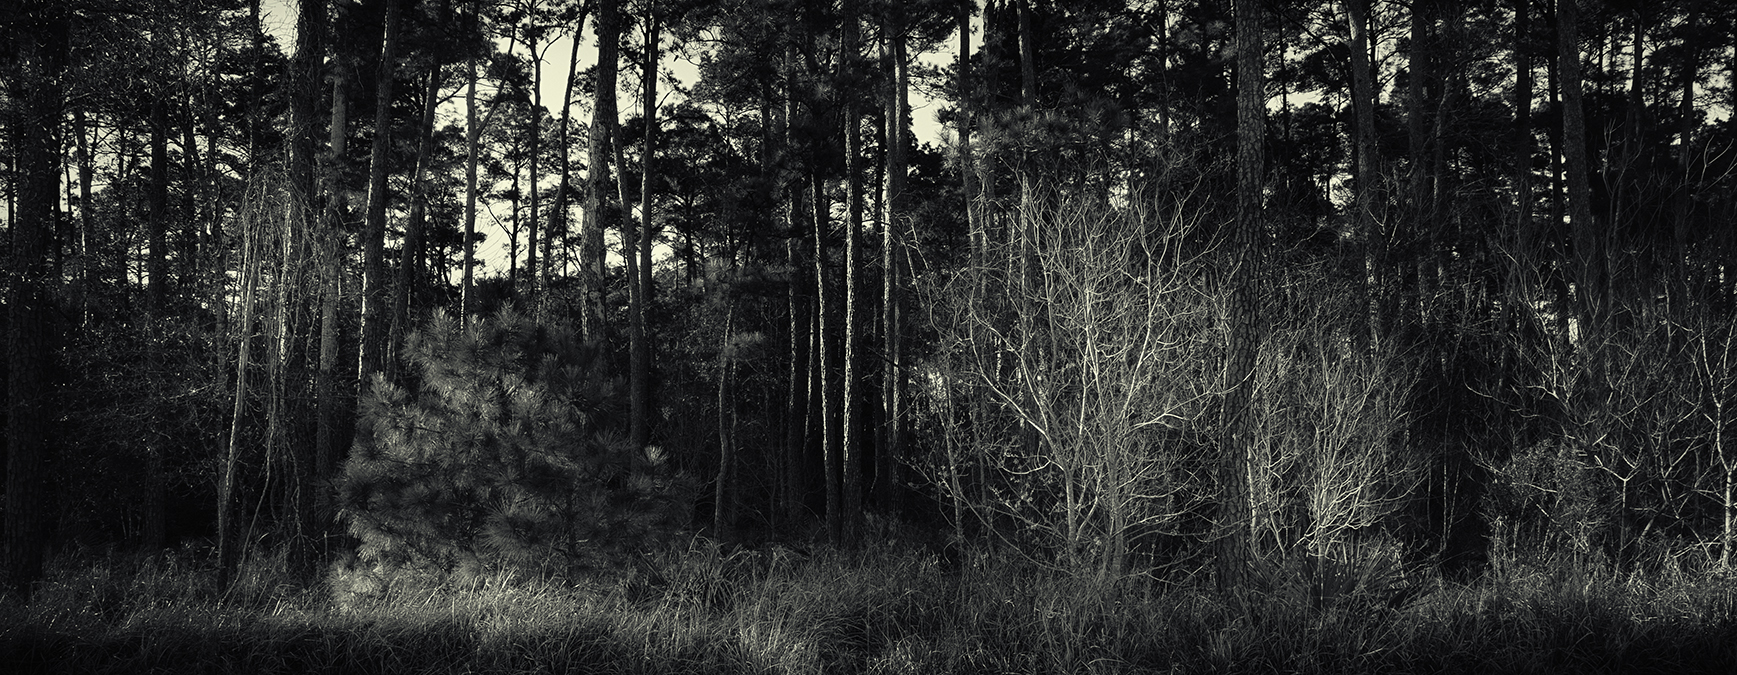 Into the Woods ©J.Rosenthal